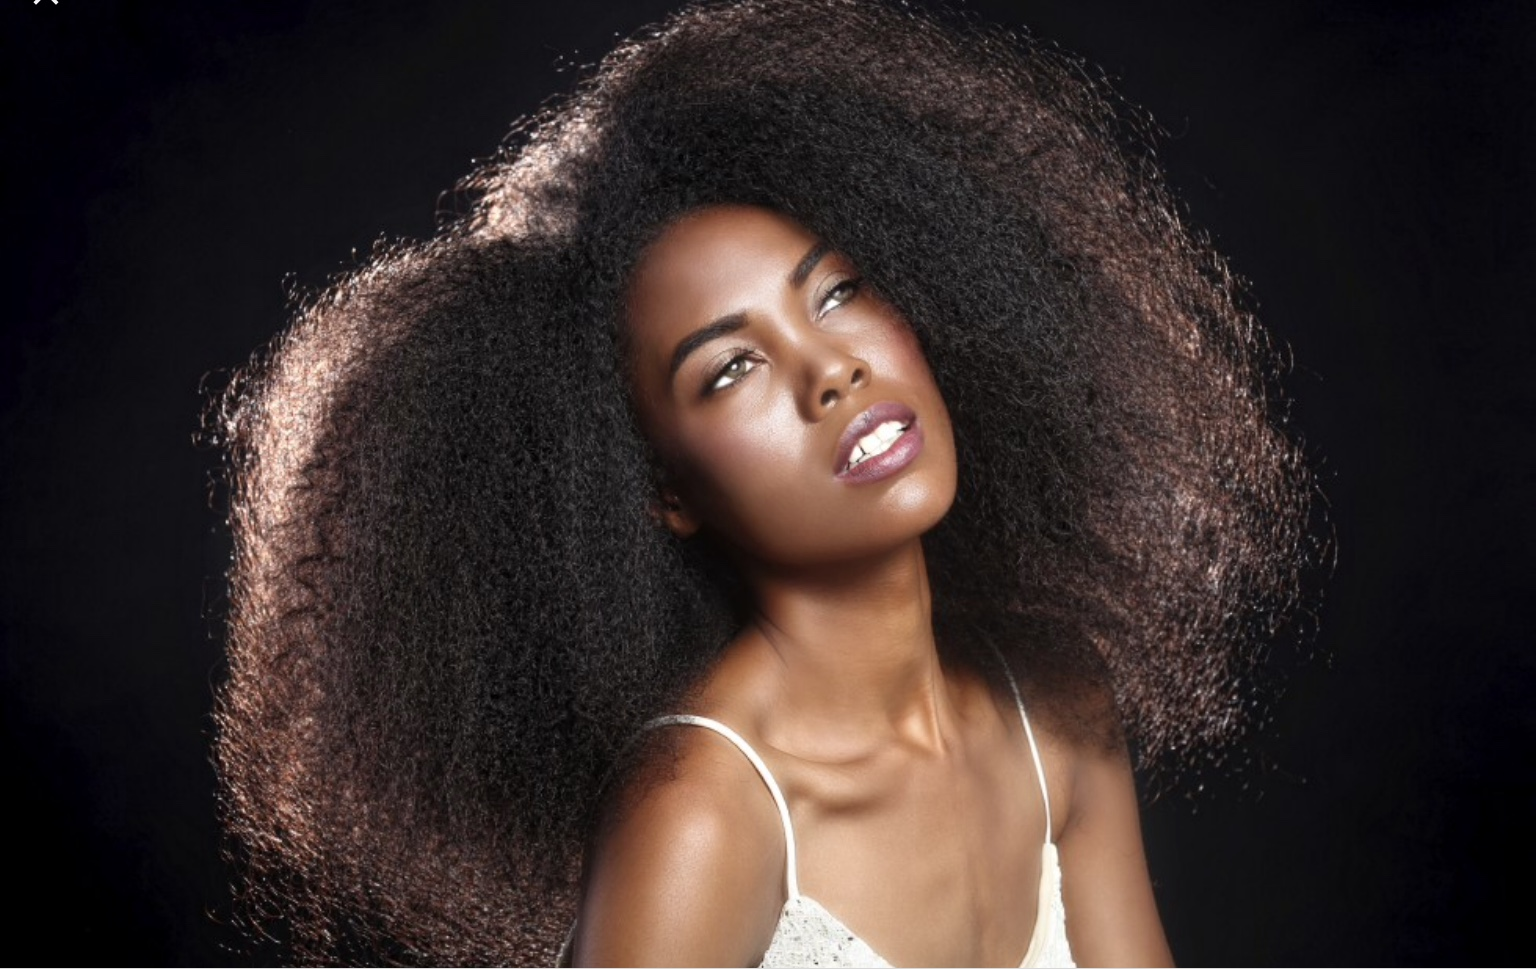 NATURAL HAIR Services - Bring out your Natural Beauty